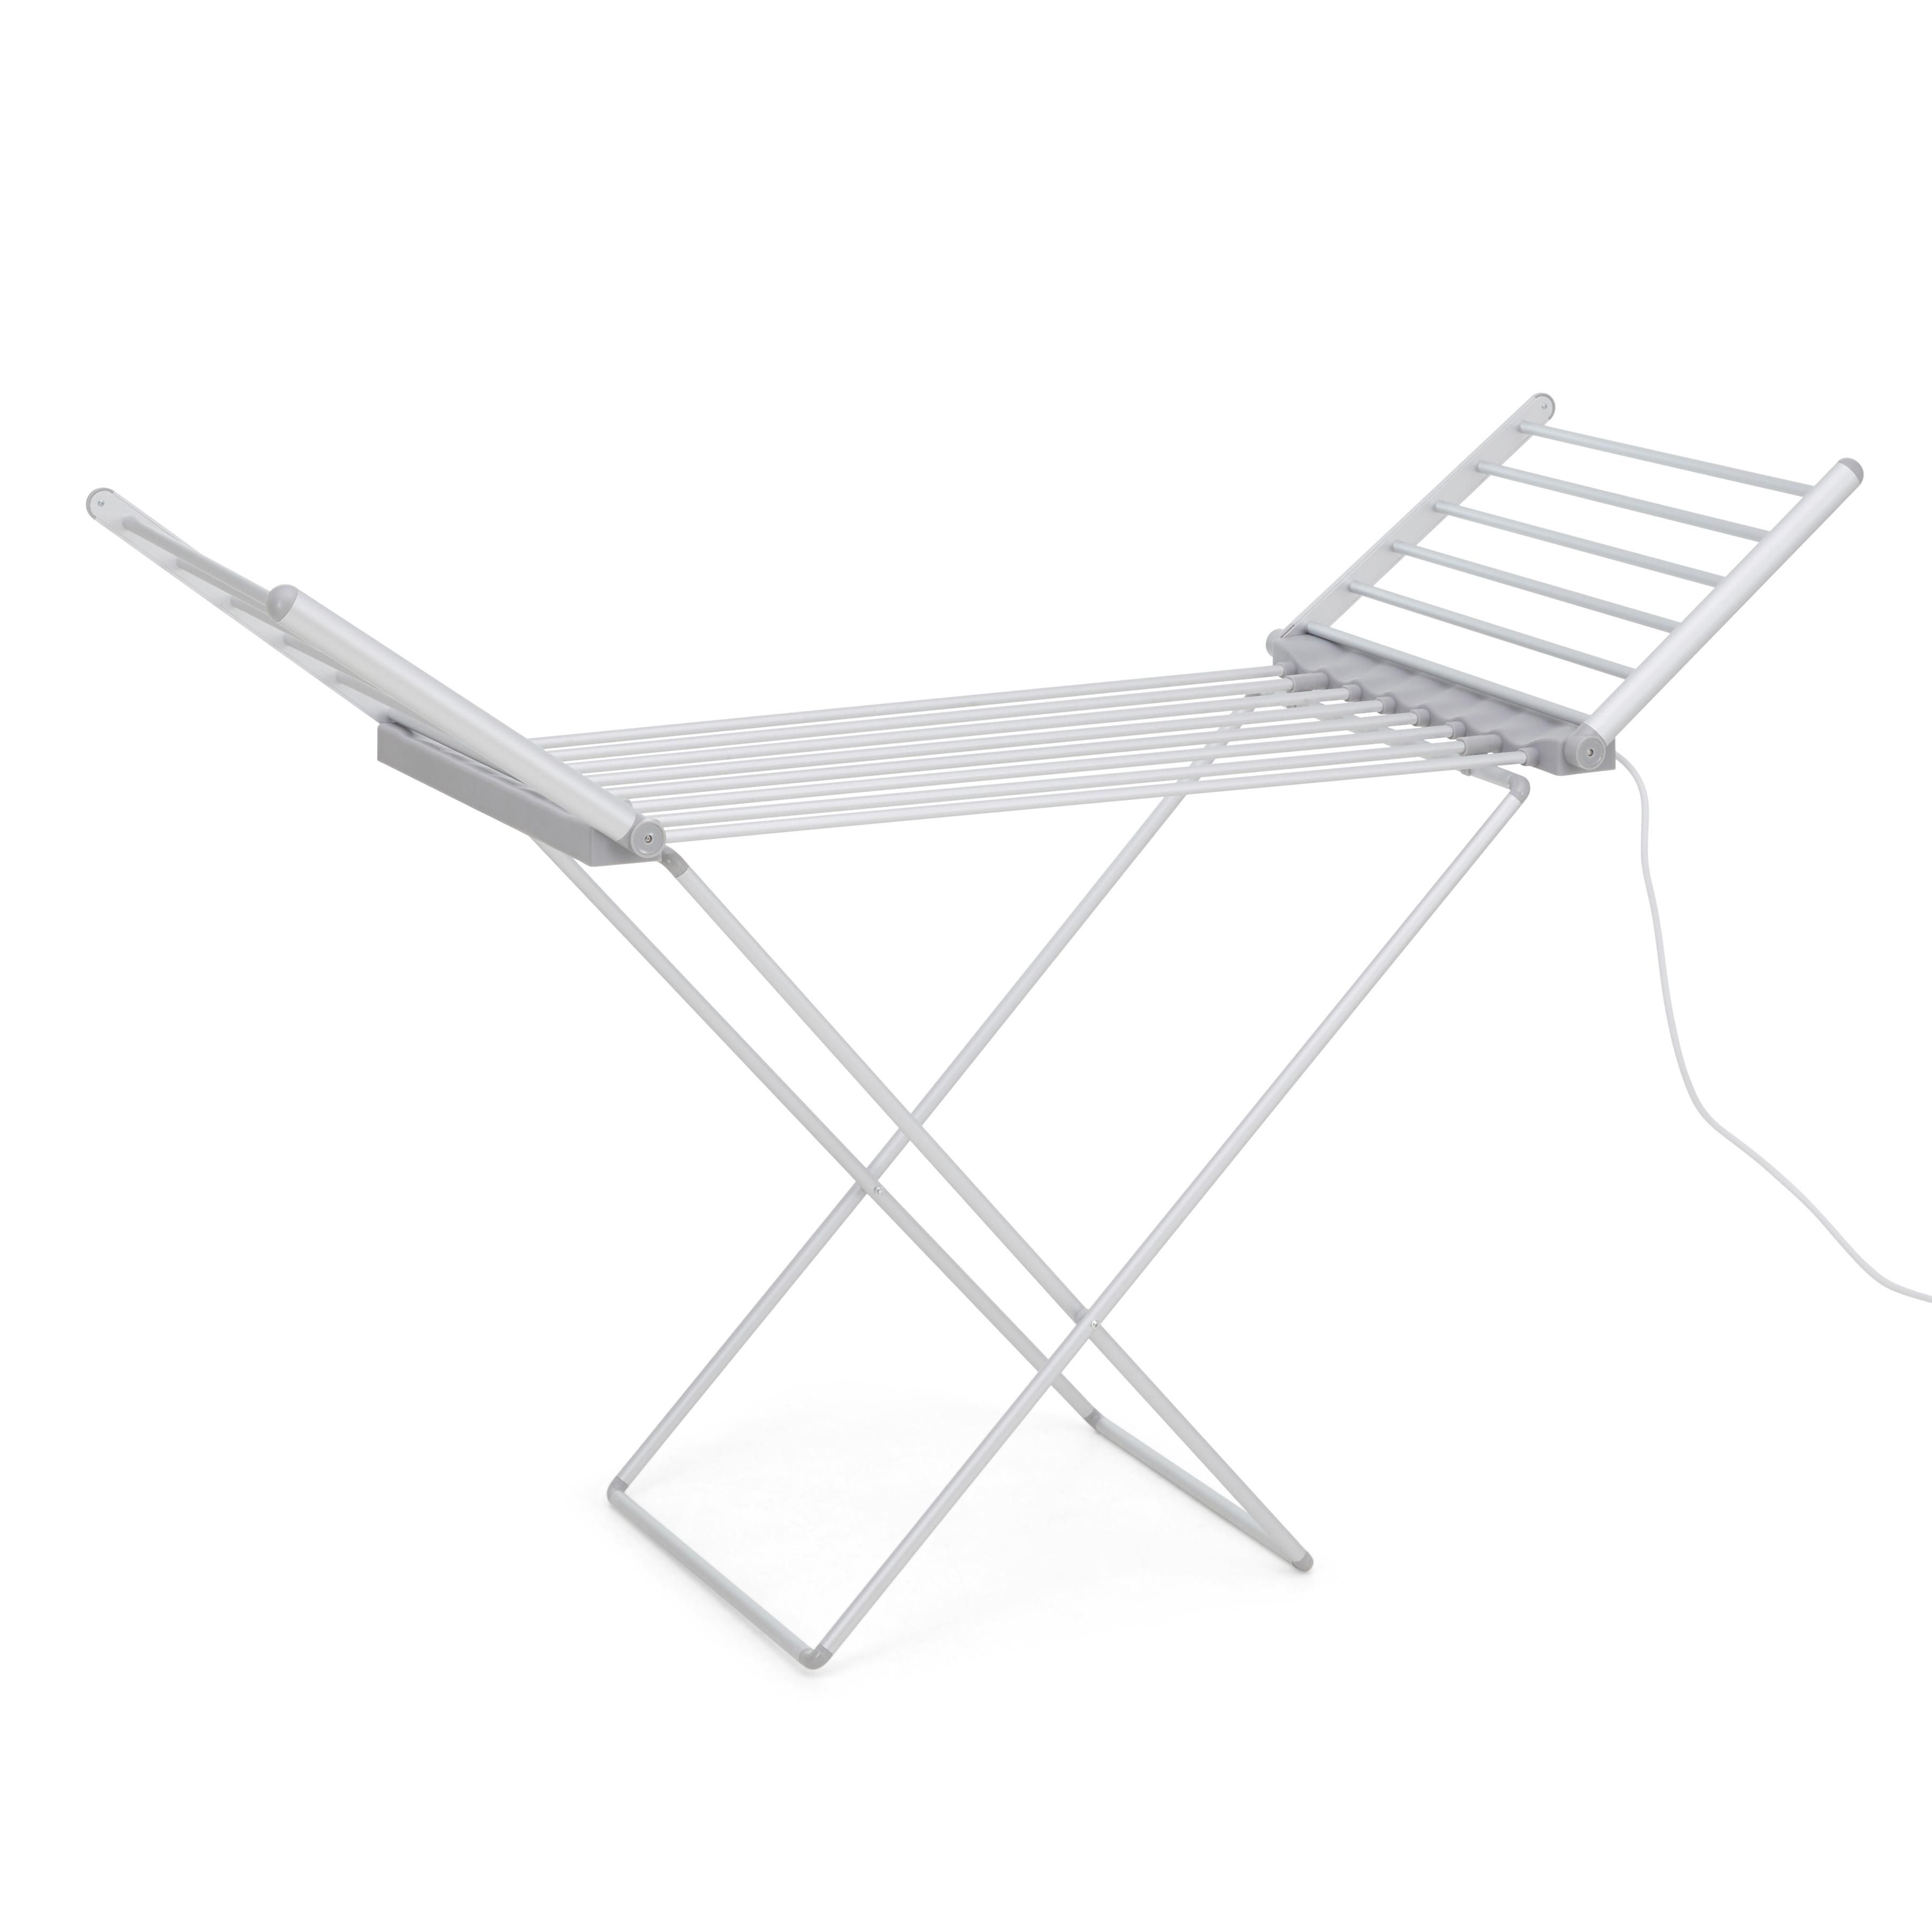 Dunelm Heated Airer With Wings Cleaning Wipes Wings Outdoor Chairs